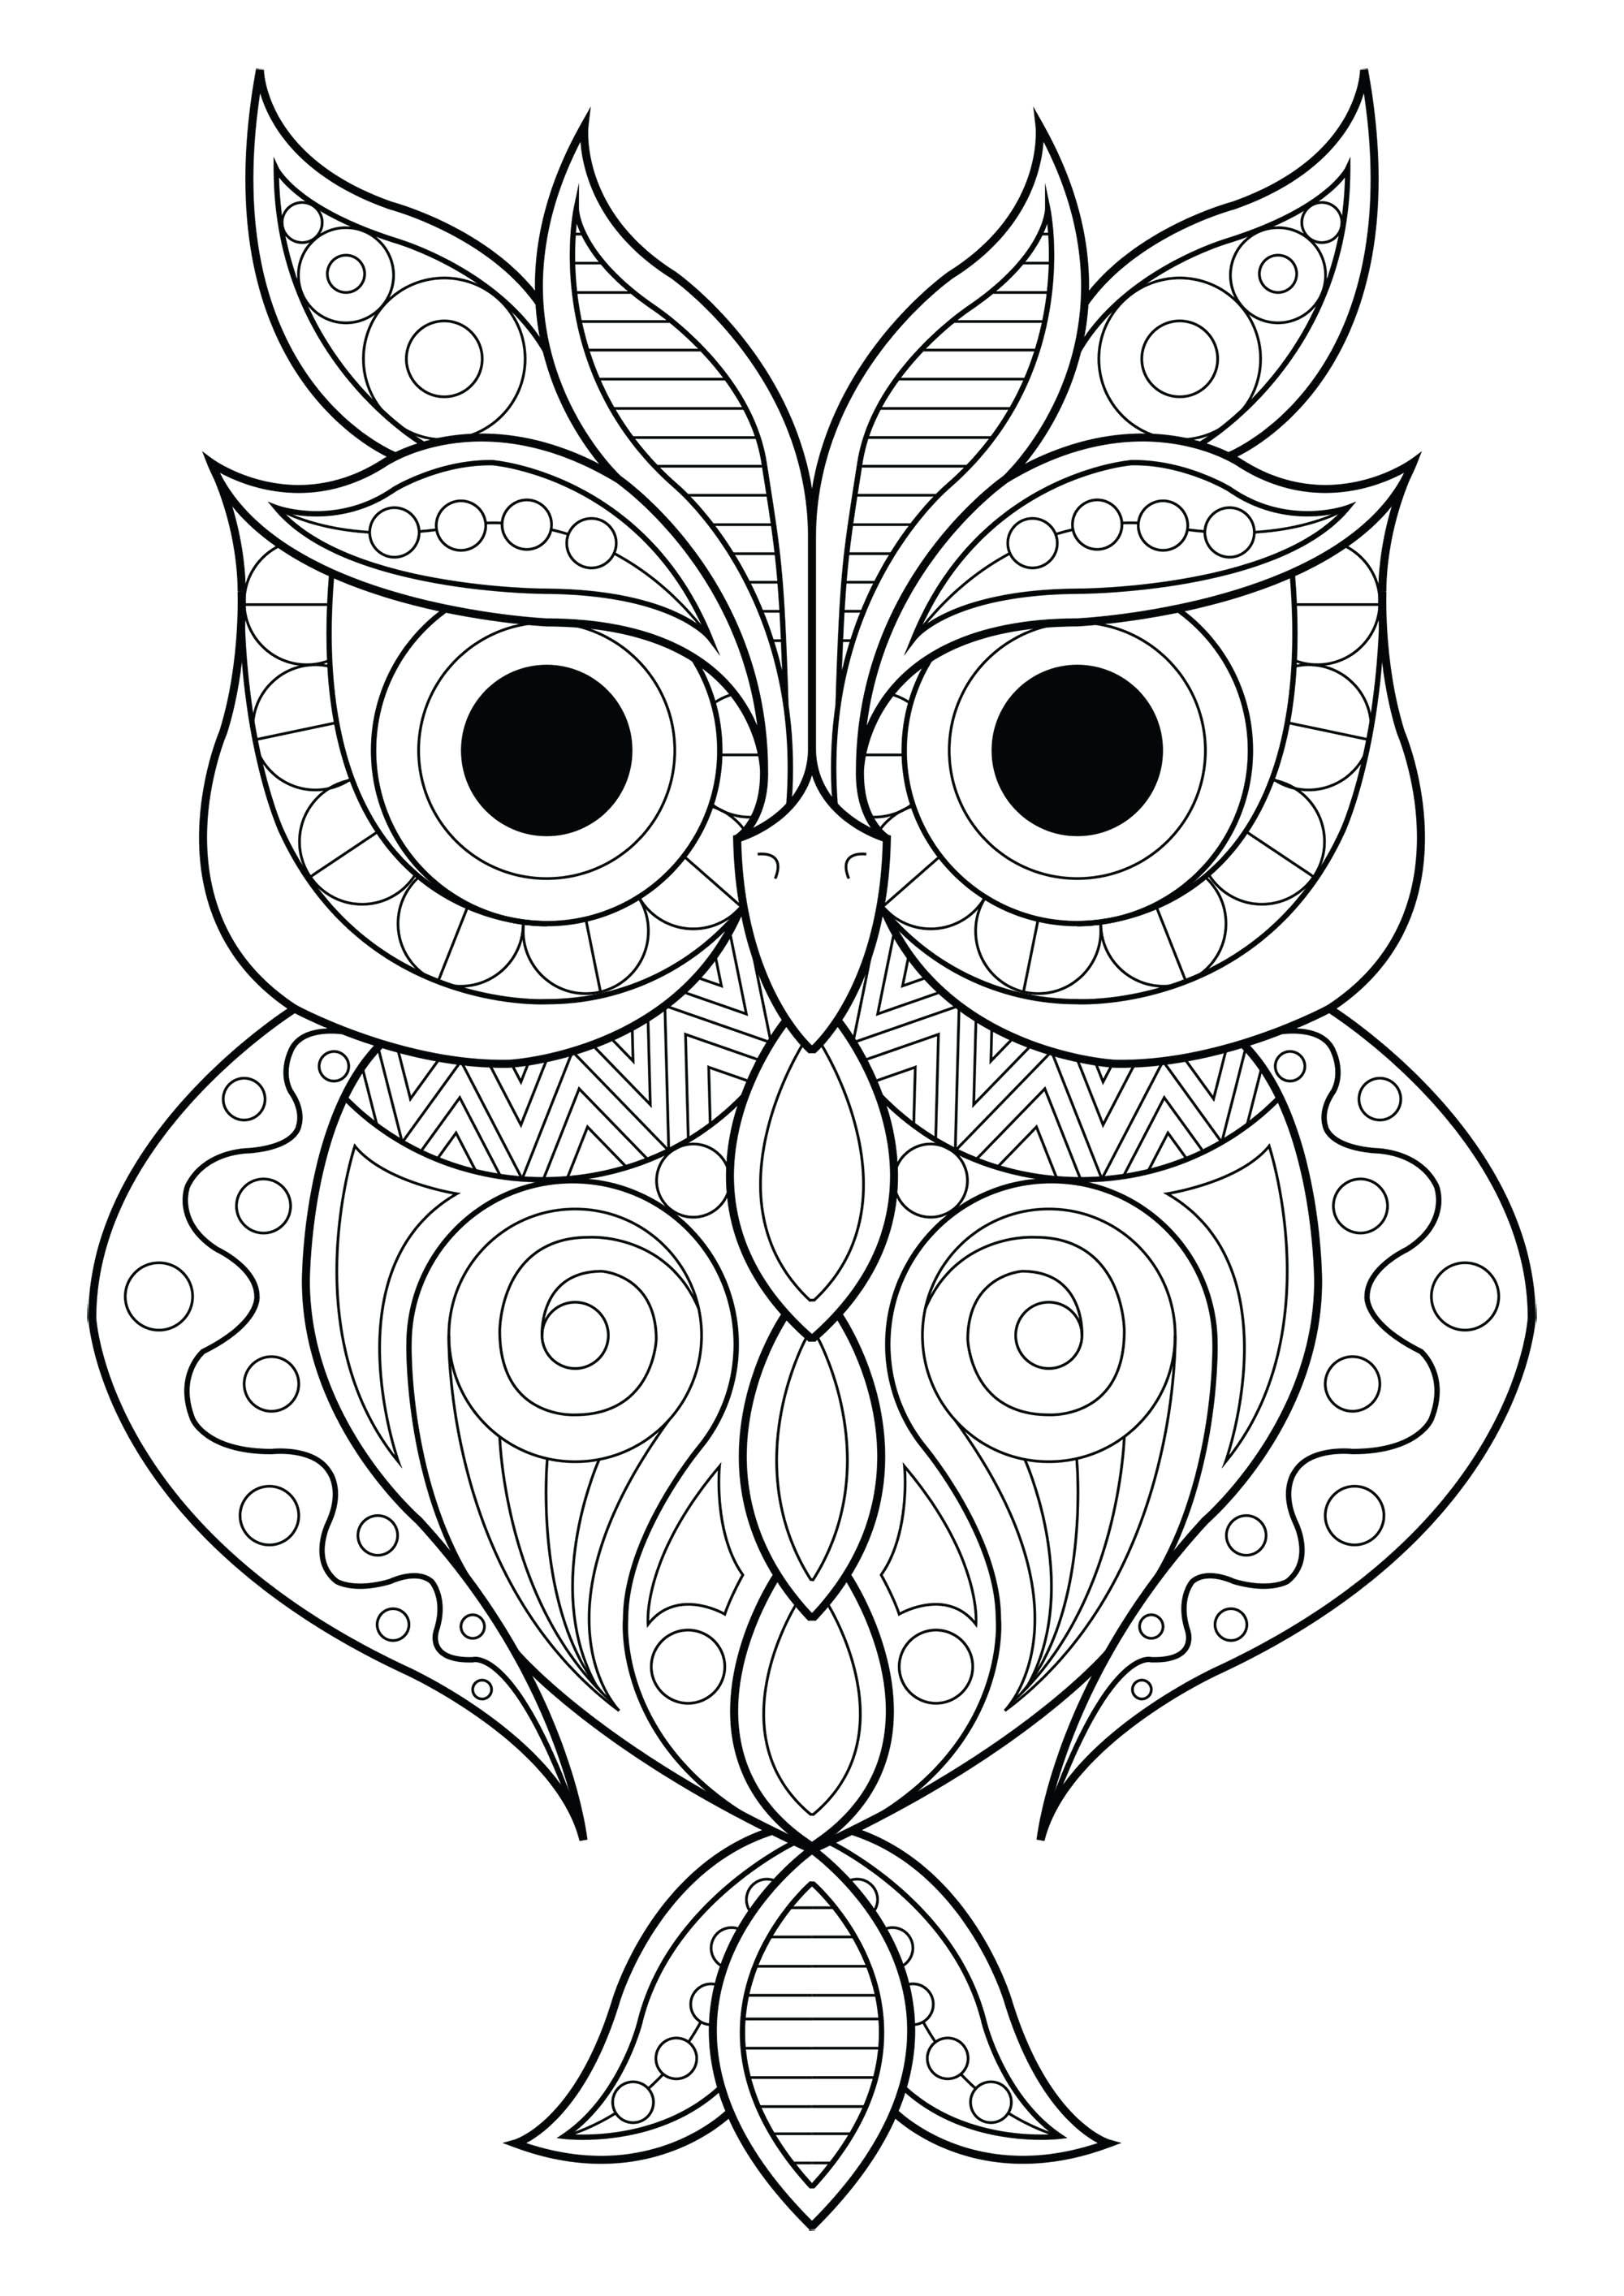 Owl Simple Patterns 2 Owl With Various Different Patterns From The Gallery Owls Artist Owl Coloring Pages Mandala Coloring Pages Animal Coloring Pages